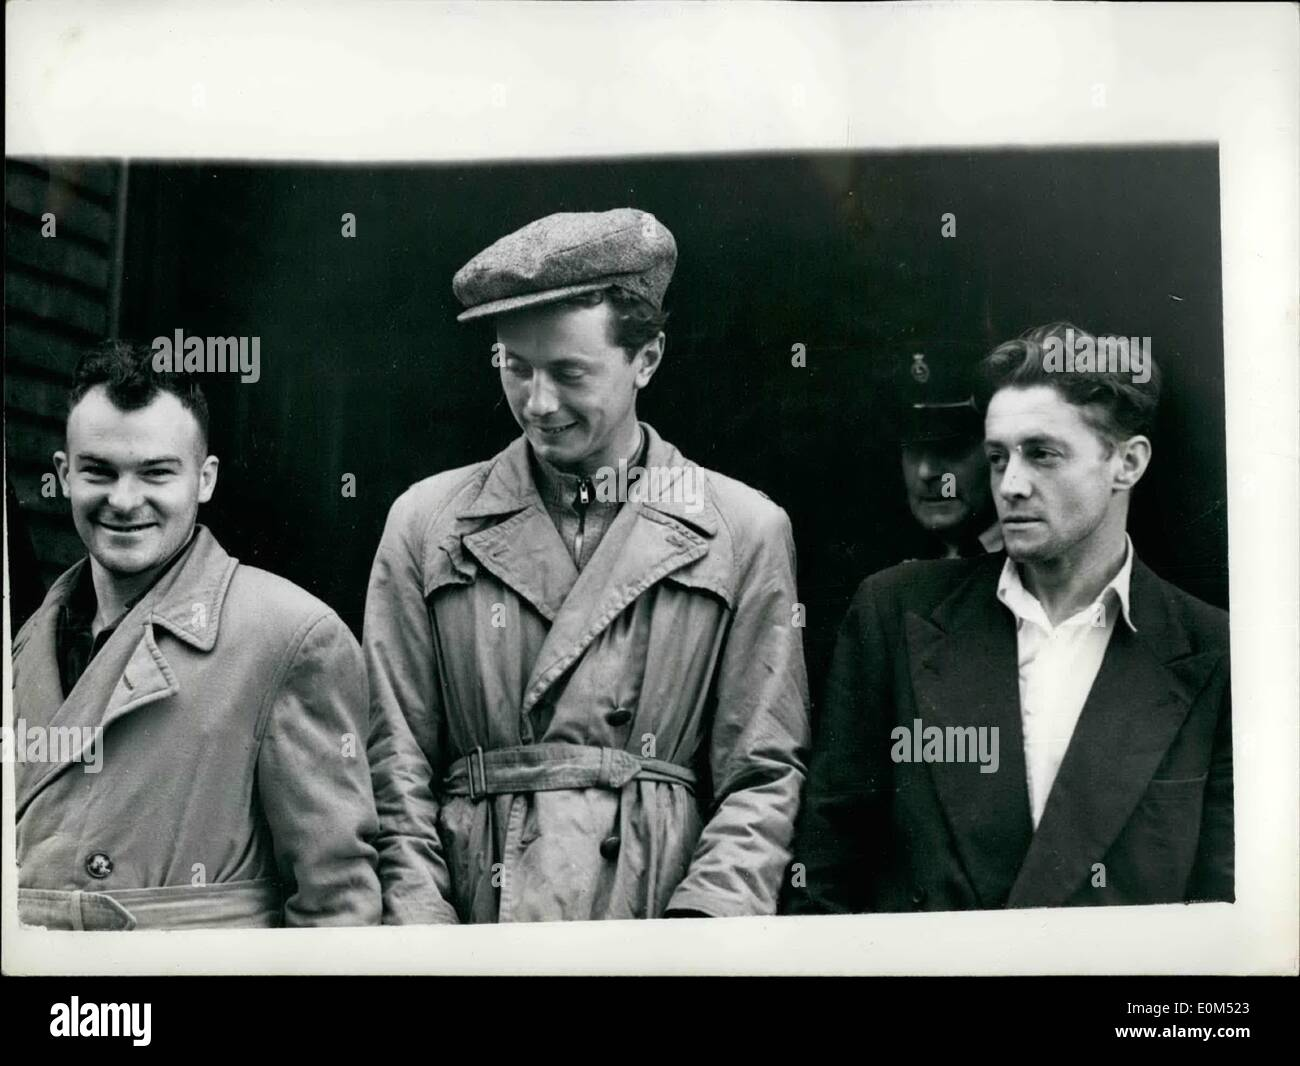 Aug. 08, 1953 - ''Rifles and Bombs Hidden in Van'' More serious charges to be brought.: The Police intend to bring a more serious charge against three men now on remand accused of being in possession of firearms - it was stated when they made their second appearances at Bishops Starford, Herbs. Today, Manus Canning (27) of Londonderry; Cathal Goulding (31) of Rathfranham, Co. Dublin and Sean Stephenson (25) of no fixed addressed were all remanded in custody. It was alleged that they were found at 3-20 a.m - Stock Image